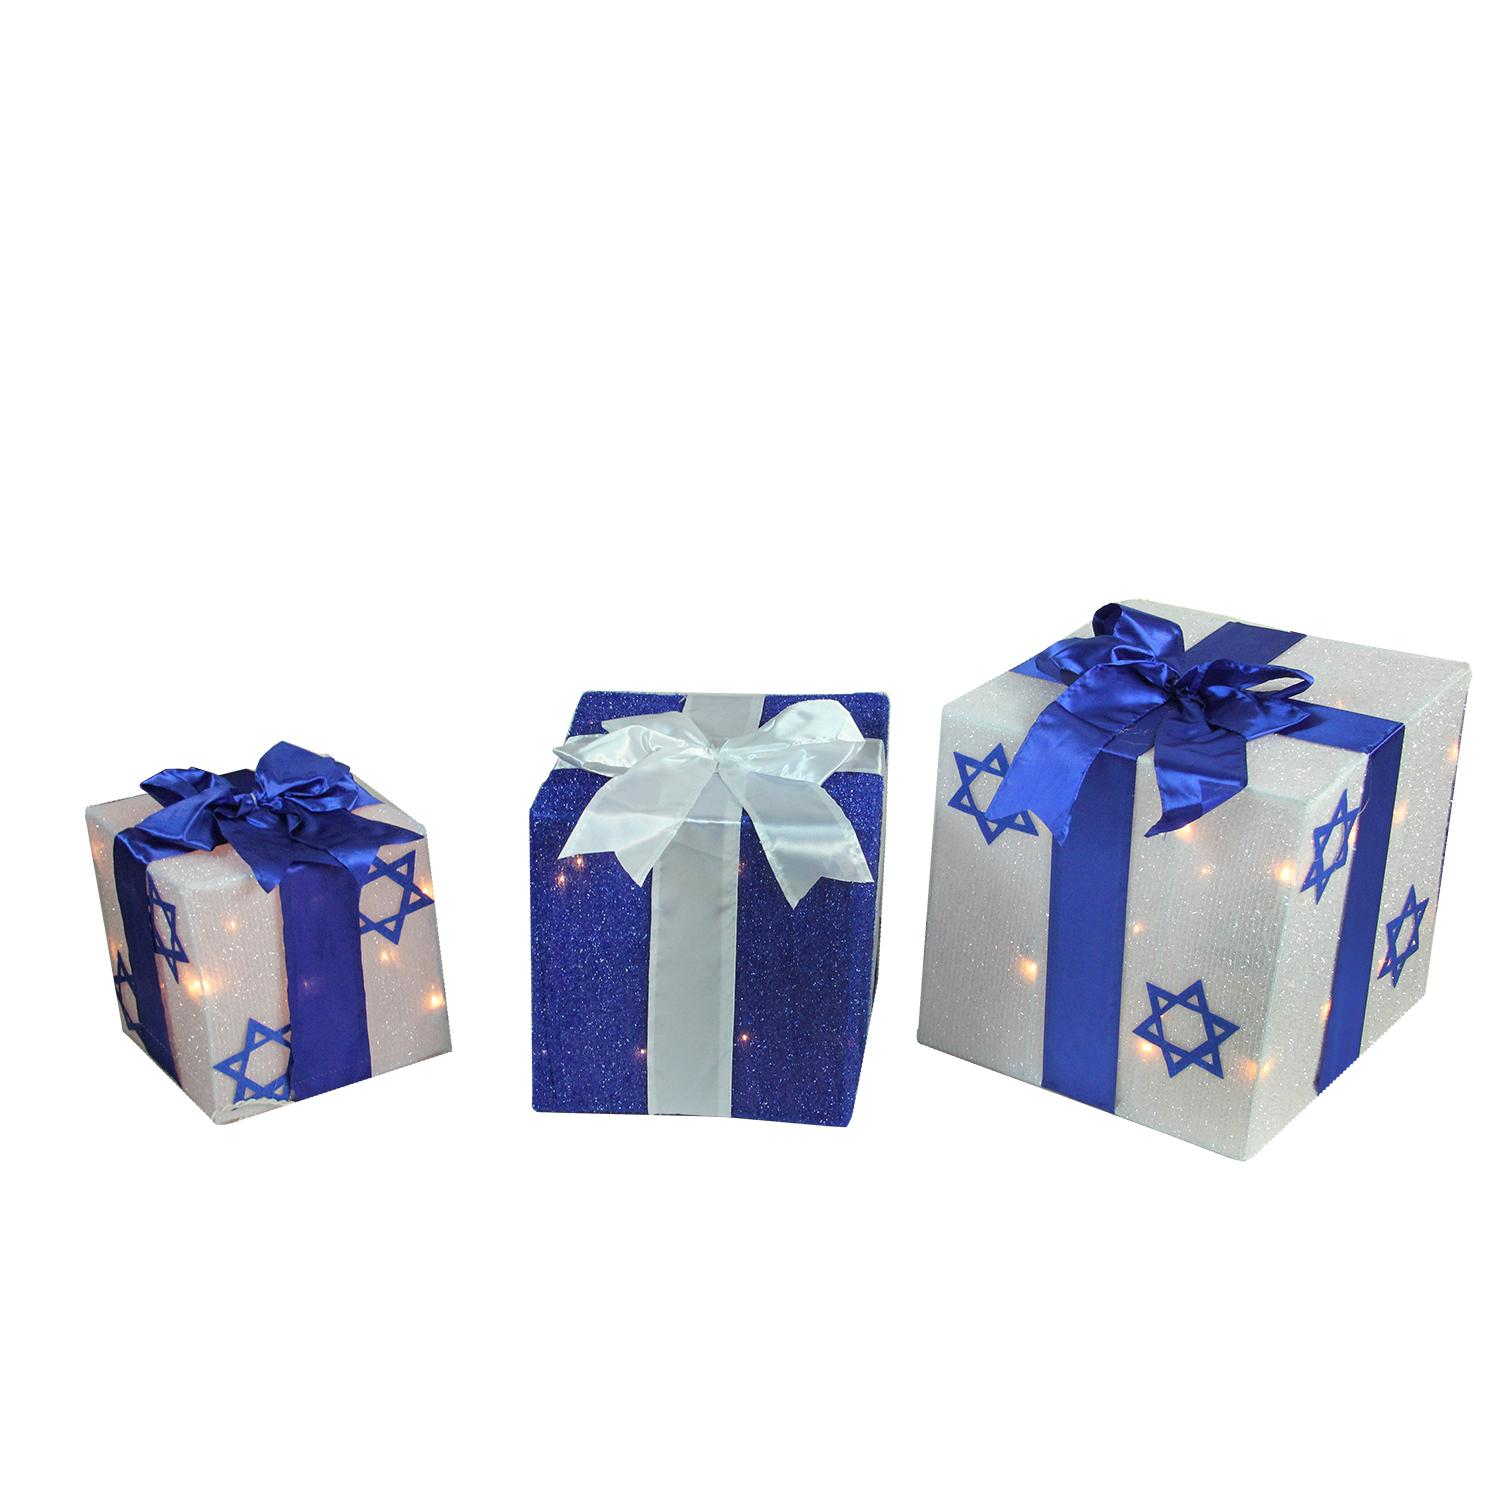 3 piece lighted white and blue hanukkah gift box christmas outdoor decoration set